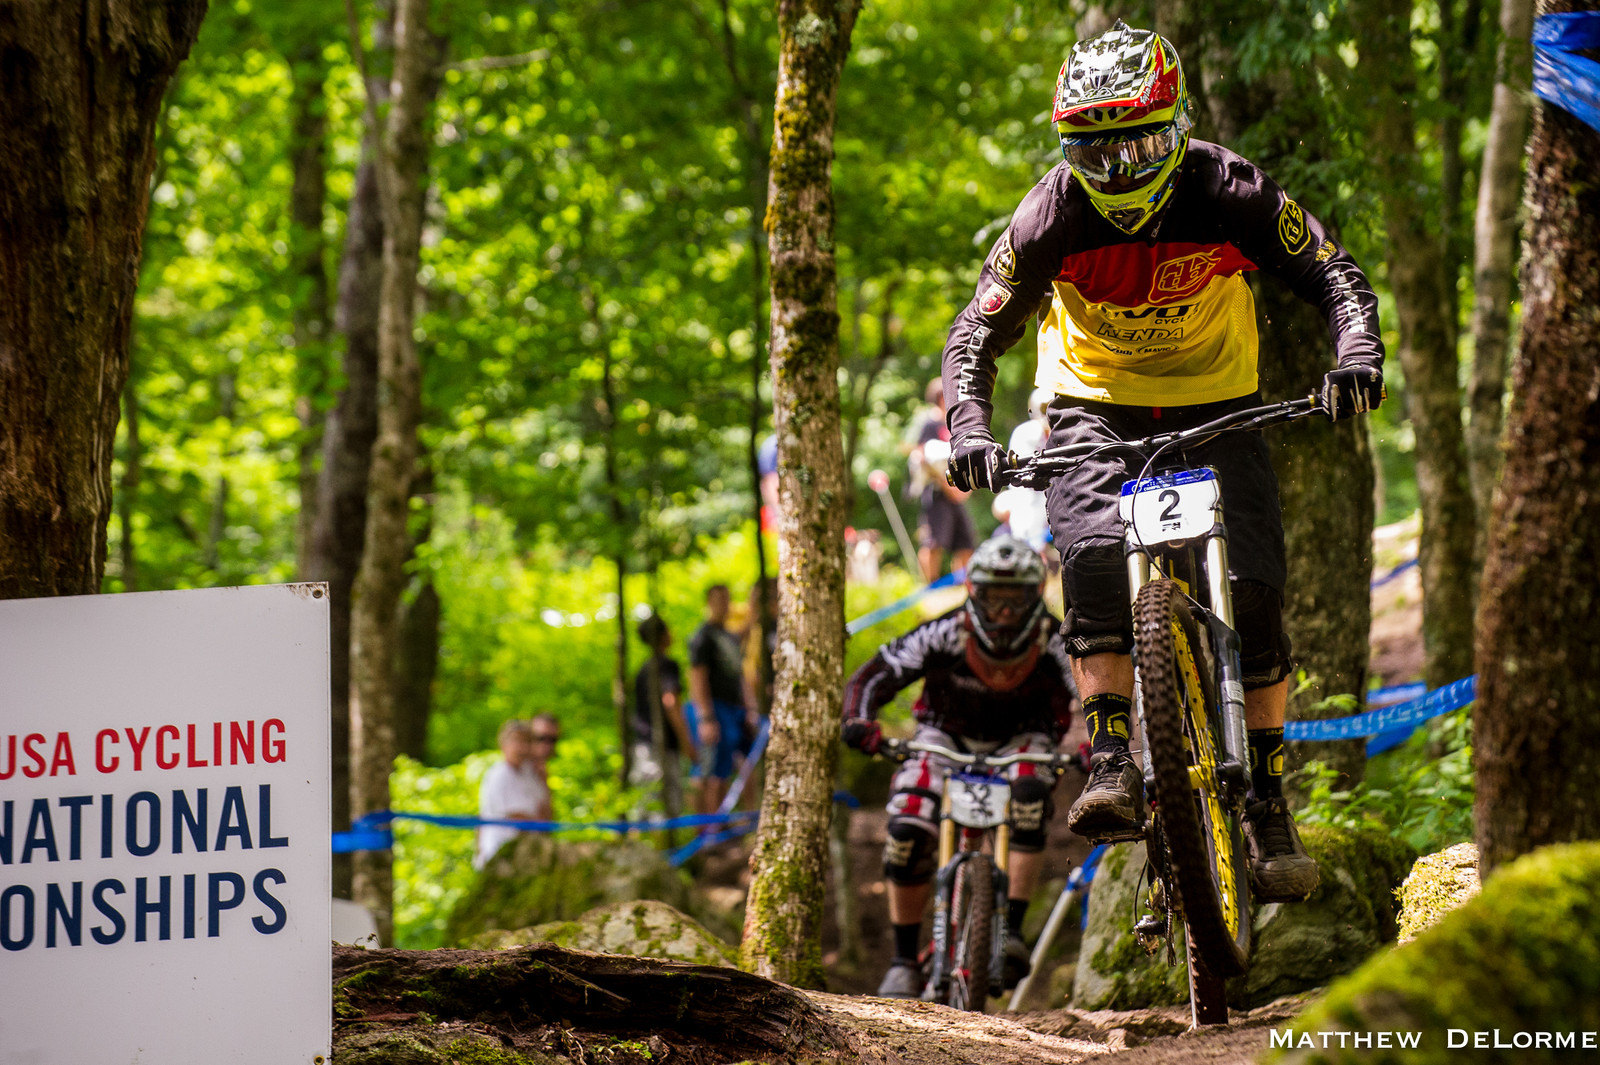 Luke Strobel, 2nd Place Qualifier at U.S. National Championships - U.S National Championship Dual Slalom Finals and DH Qualifying - Mountain Biking Pictures - Vital MTB